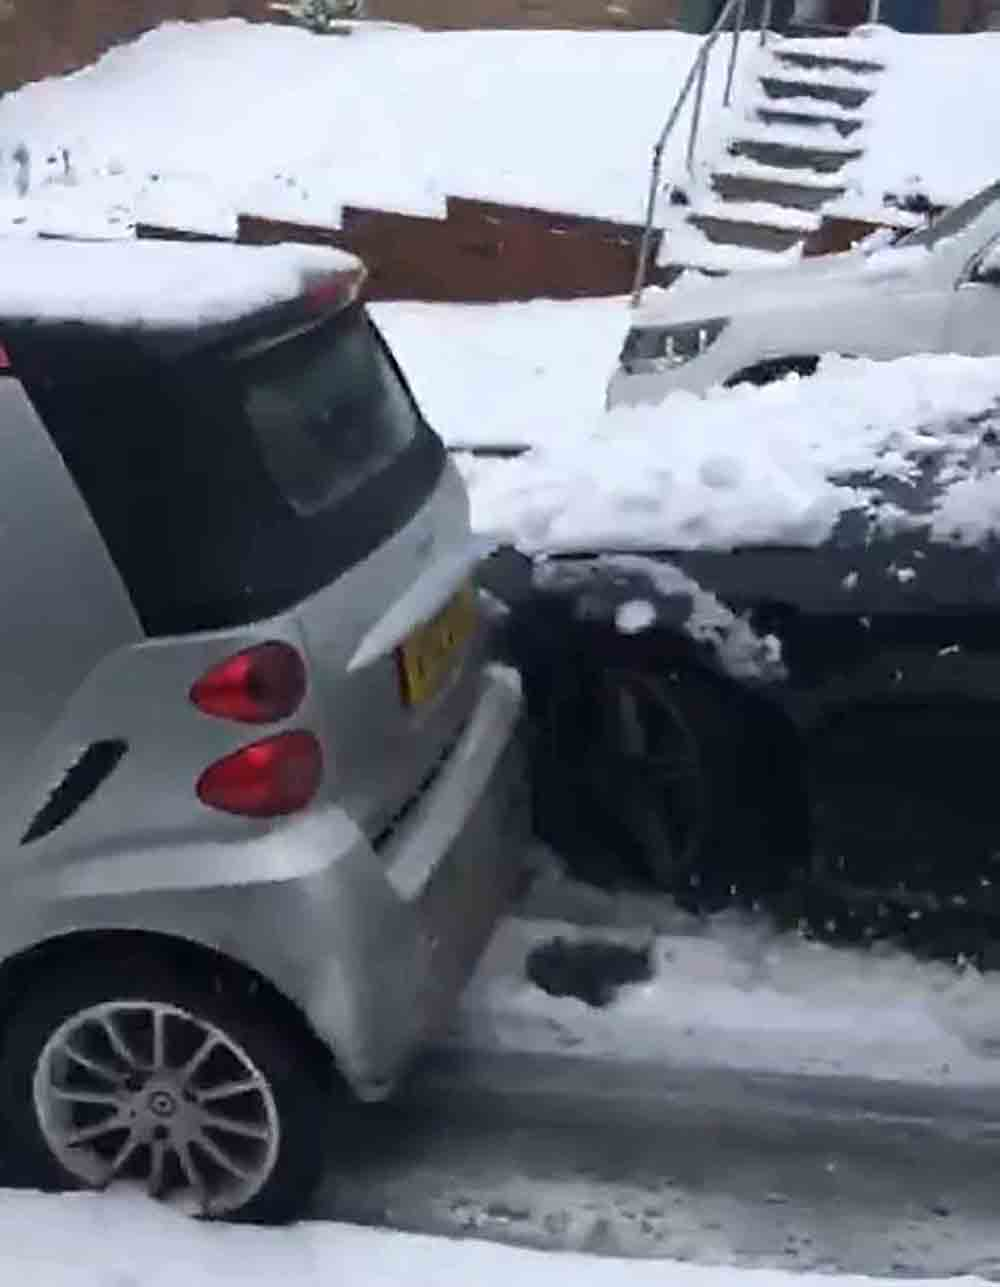 Mercedes driver loses control after overtaking and crashes into four cars - Viral Video News UK